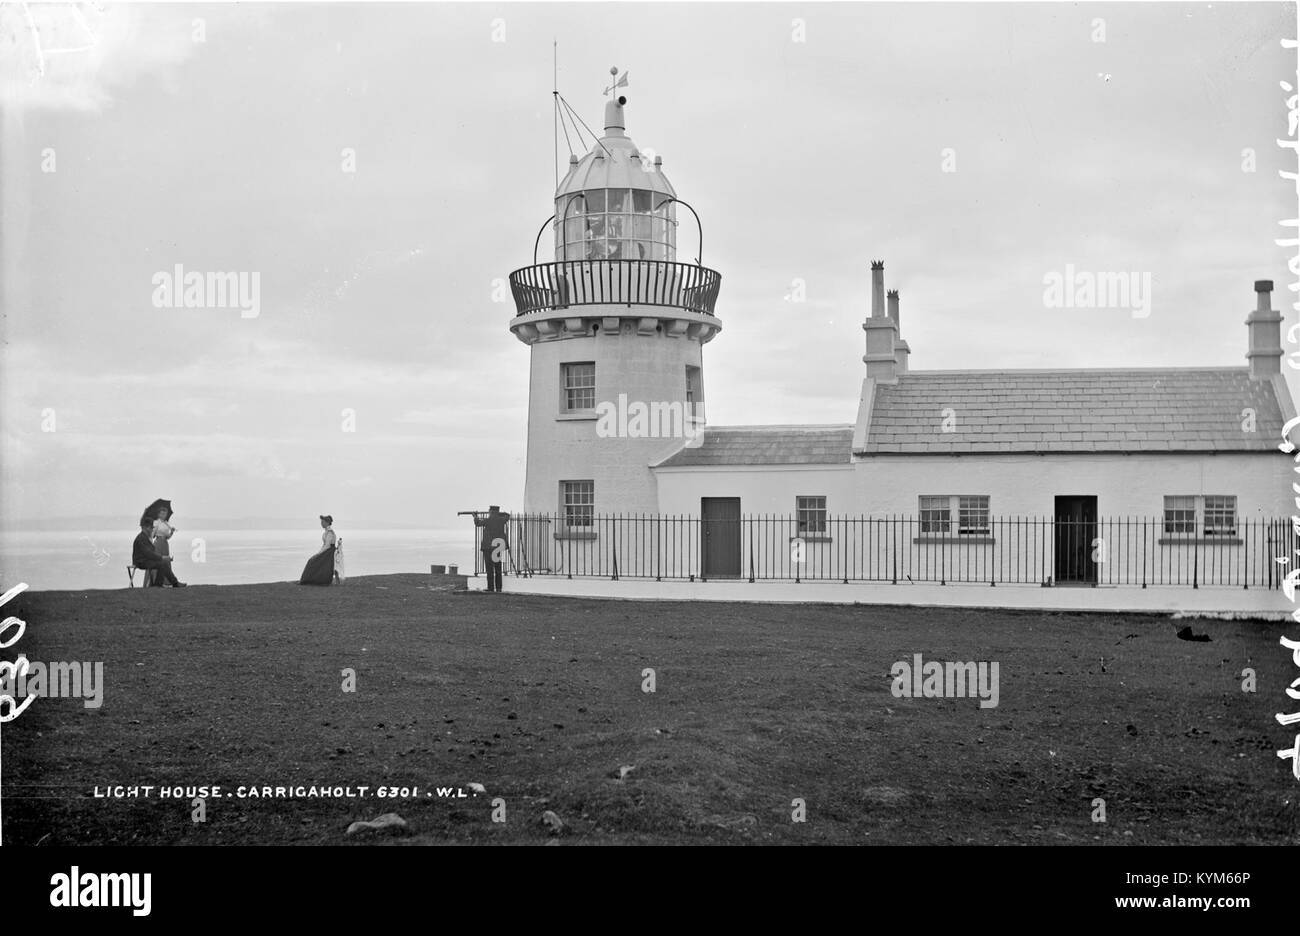 Lighthouse, Carrigaholt, Co Clare 39480862741 o - Stock Image